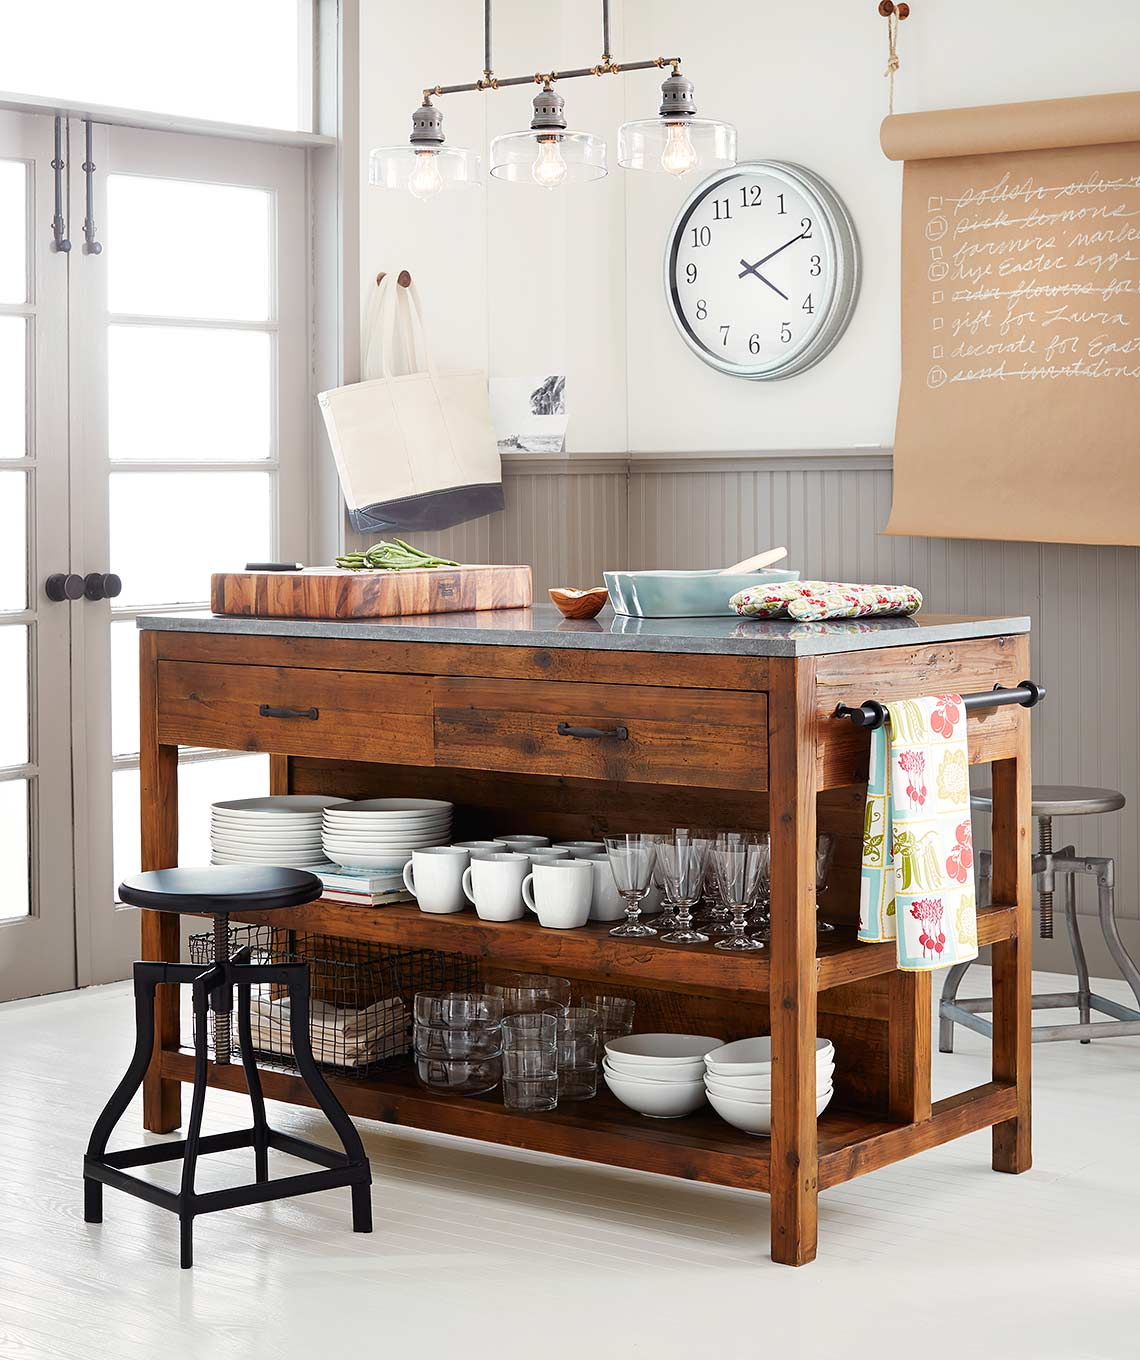 Crate and Barrel catalog photograph of a kitchen island